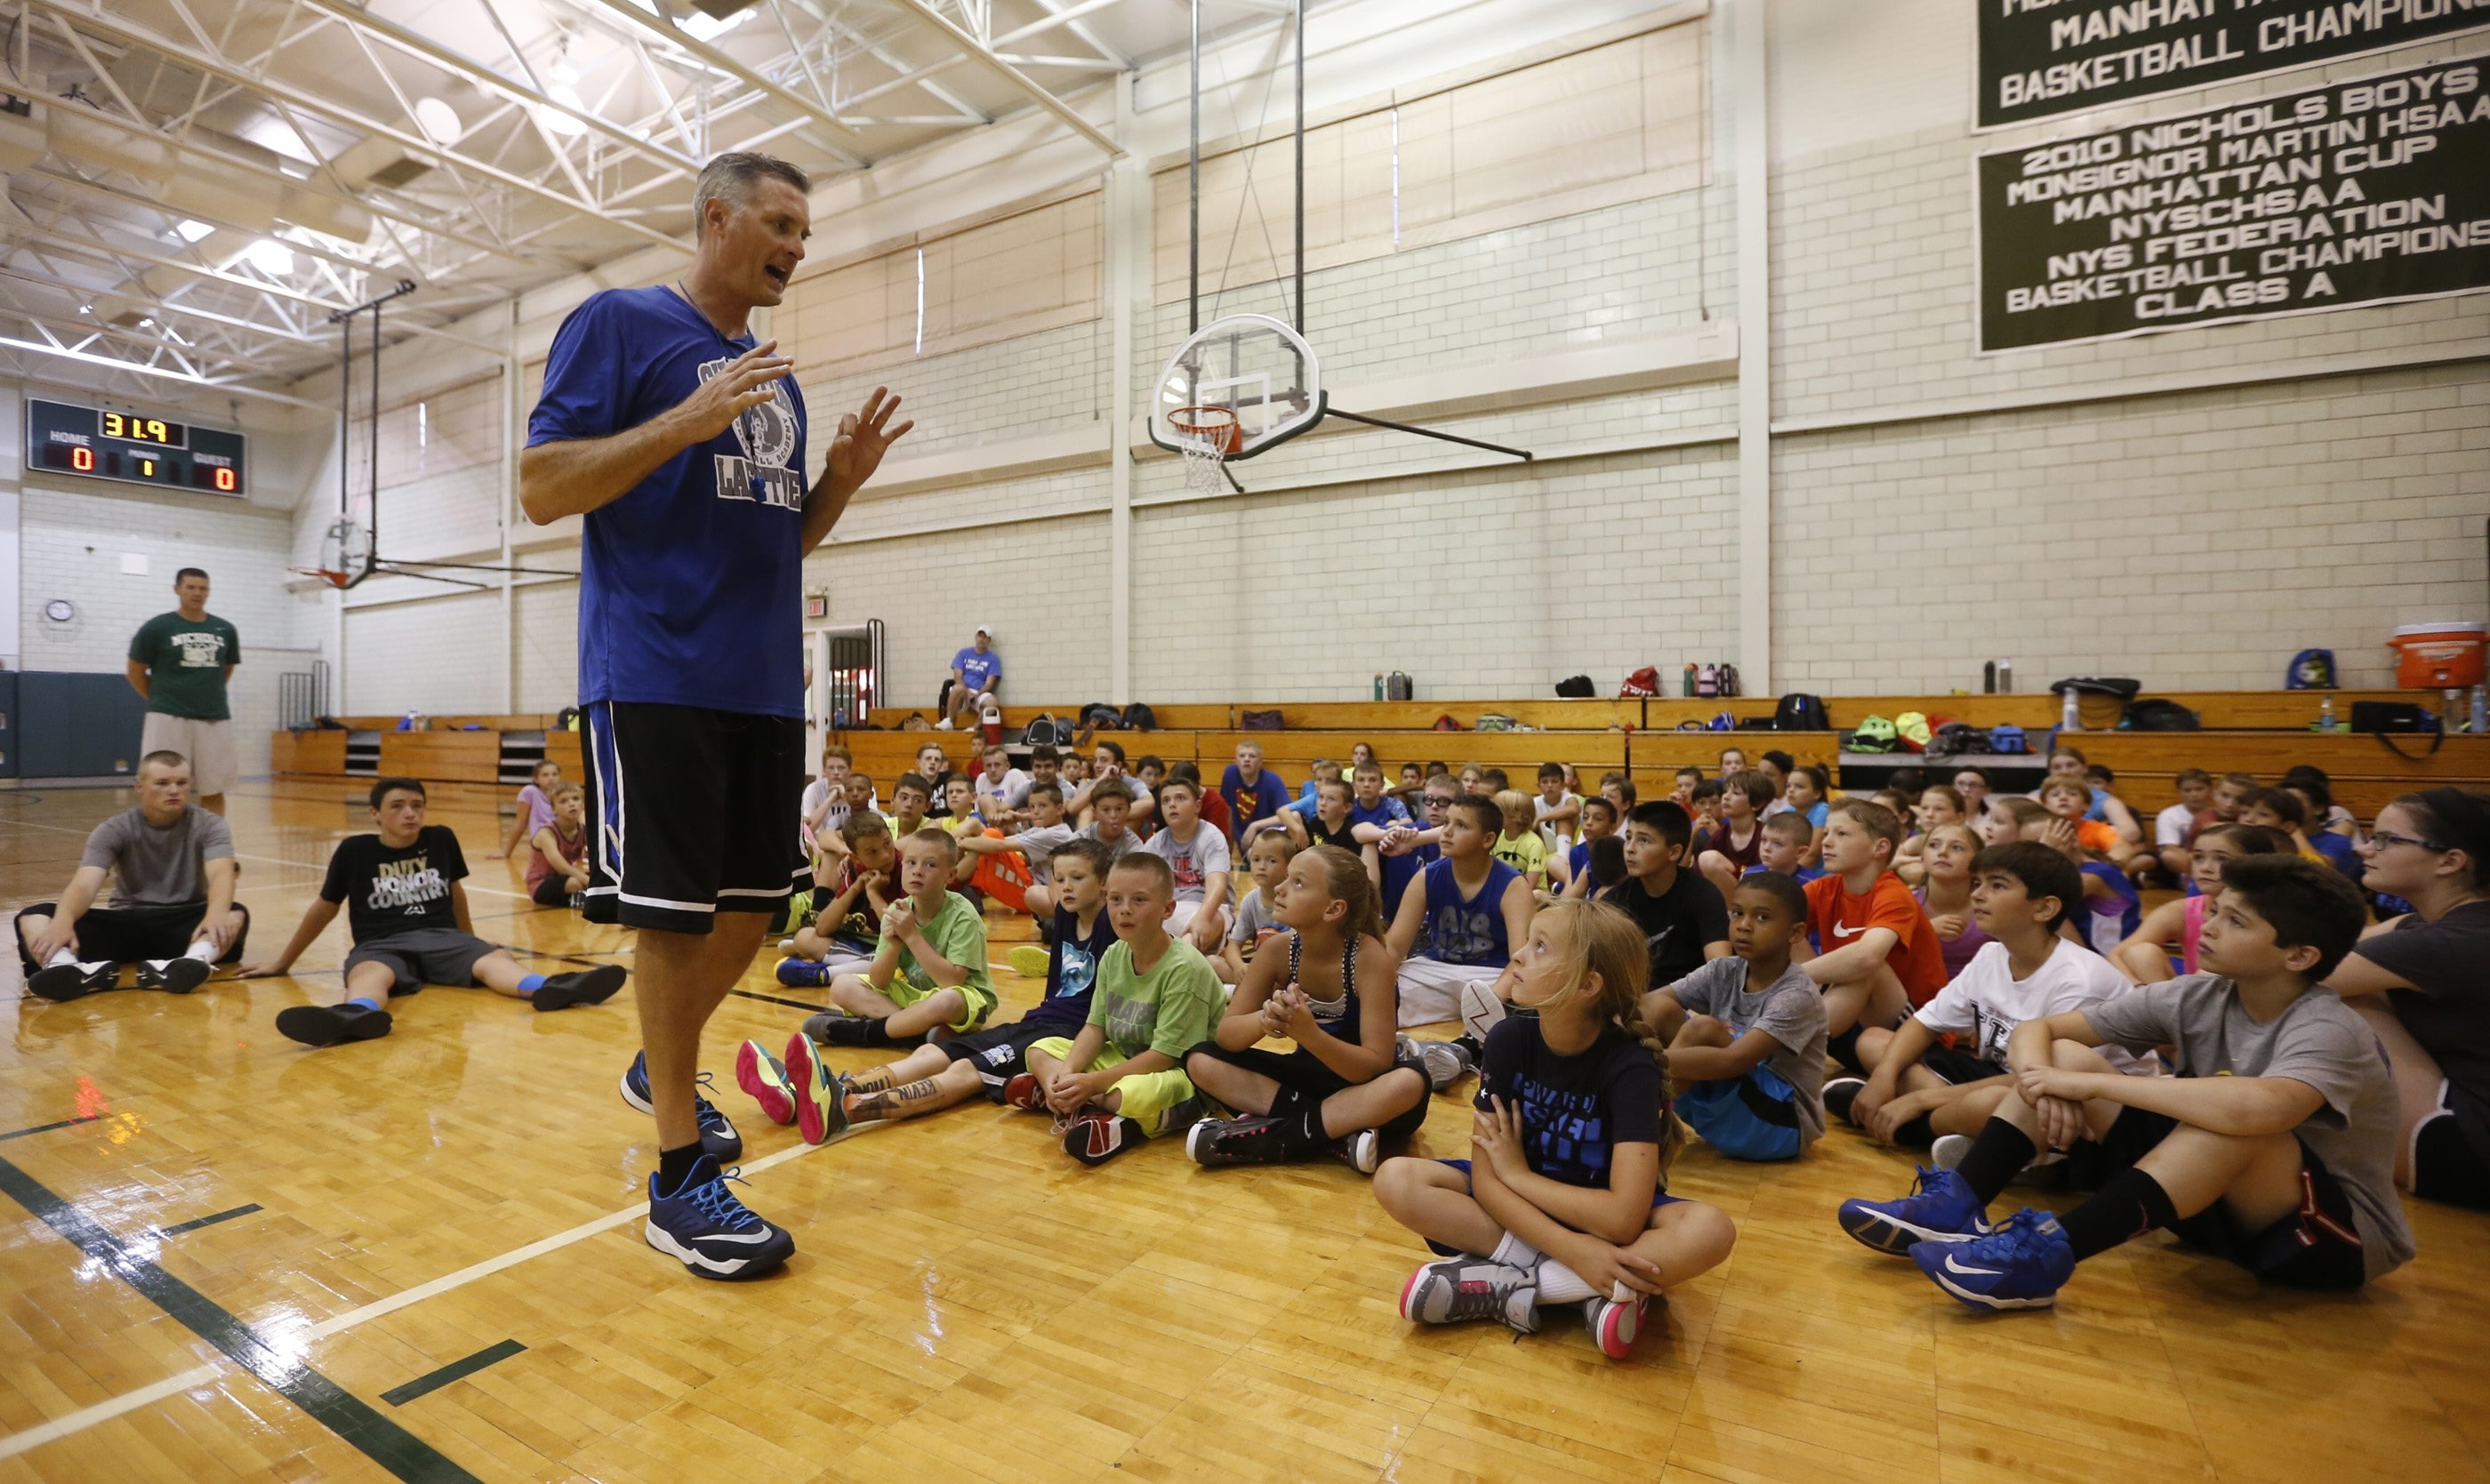 An attentive audience listens as Christian Laettner talks about fundamentals to the campers at his basketball academy at Nichols School.